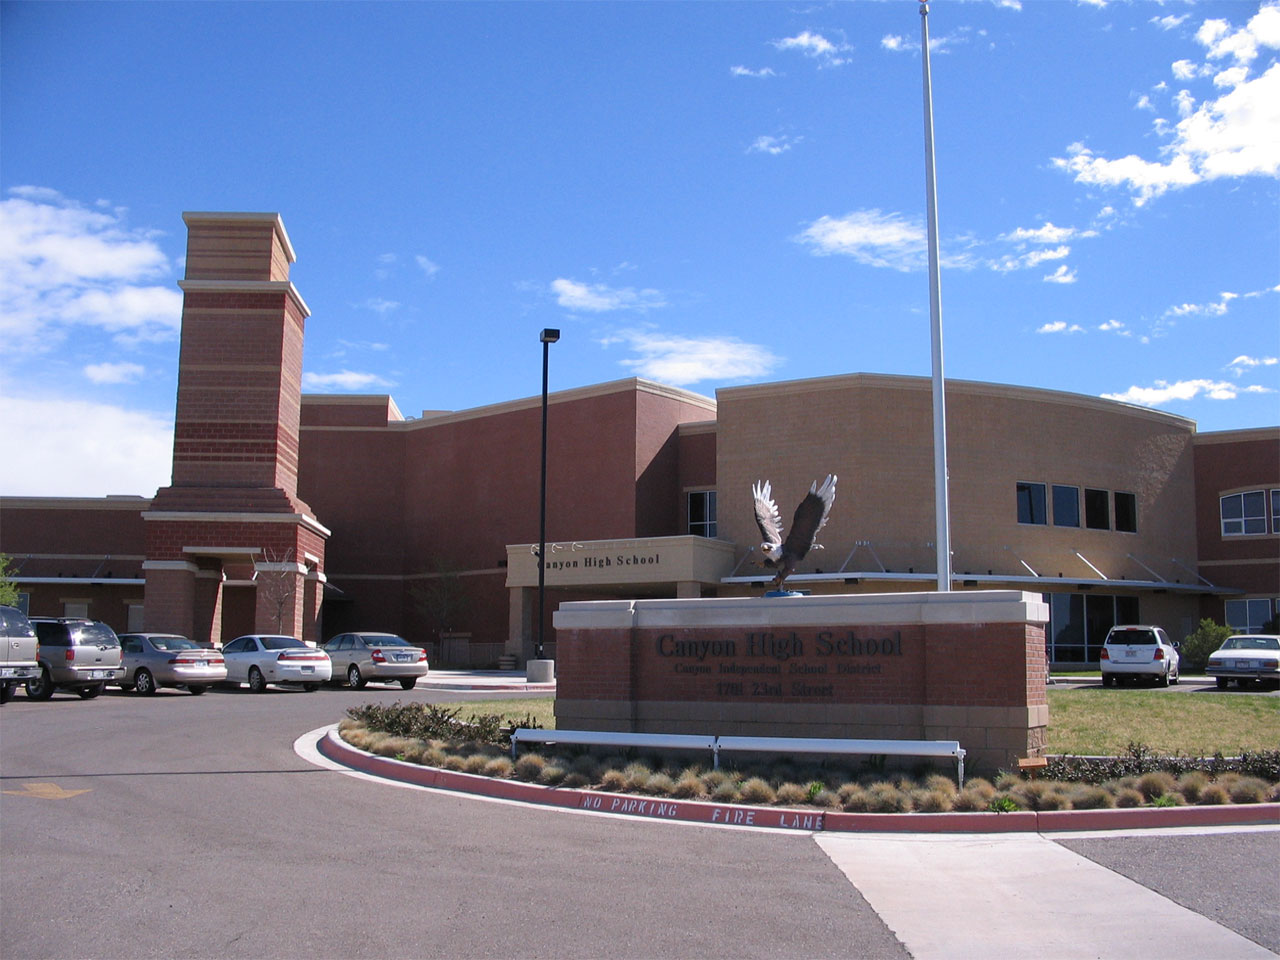 Canyon_High_School_(Texas)_in_Canyon_Texas_USA (1).jpg